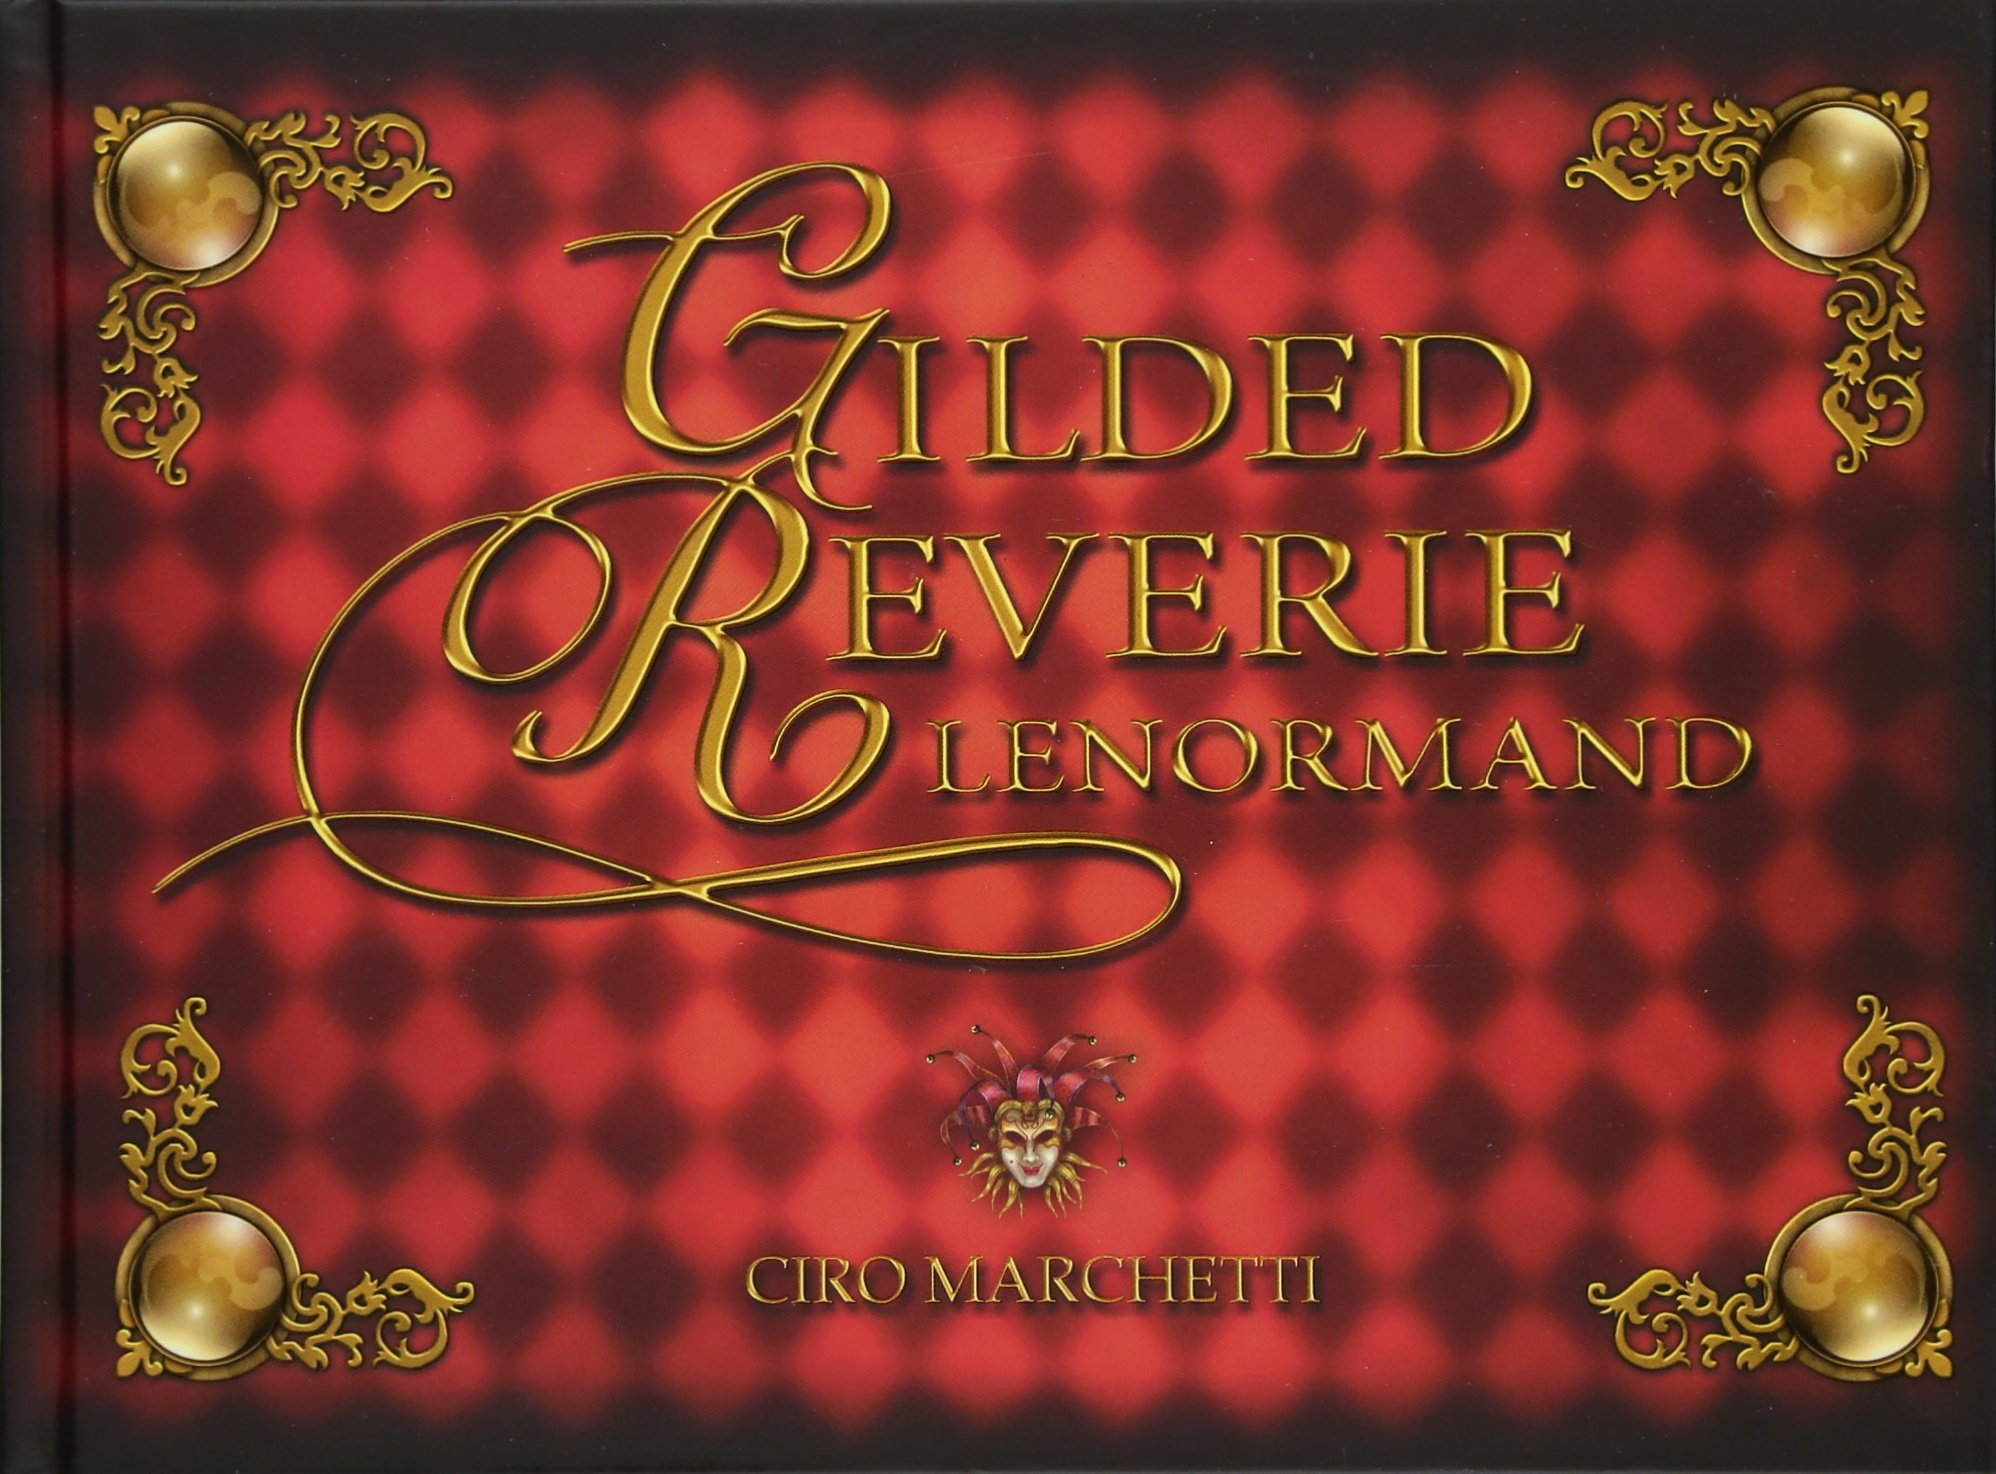 Gilded Reverie Lenormand: Amazon.es: Ciro Marchetti: Libros ...